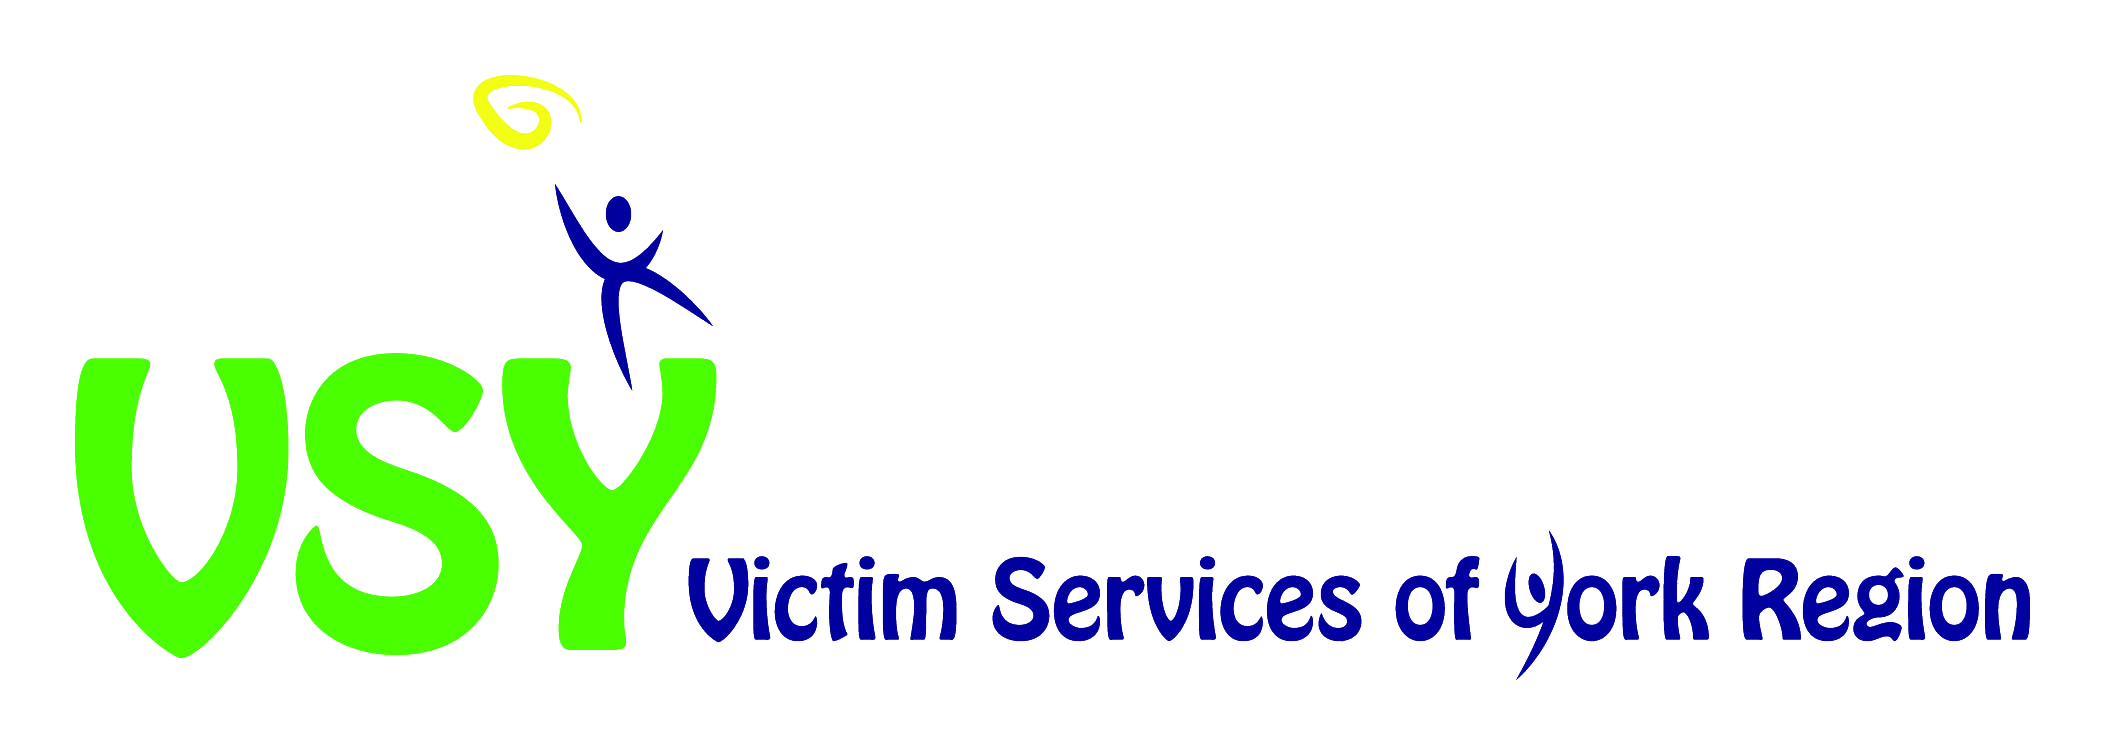 The Victim Services logo